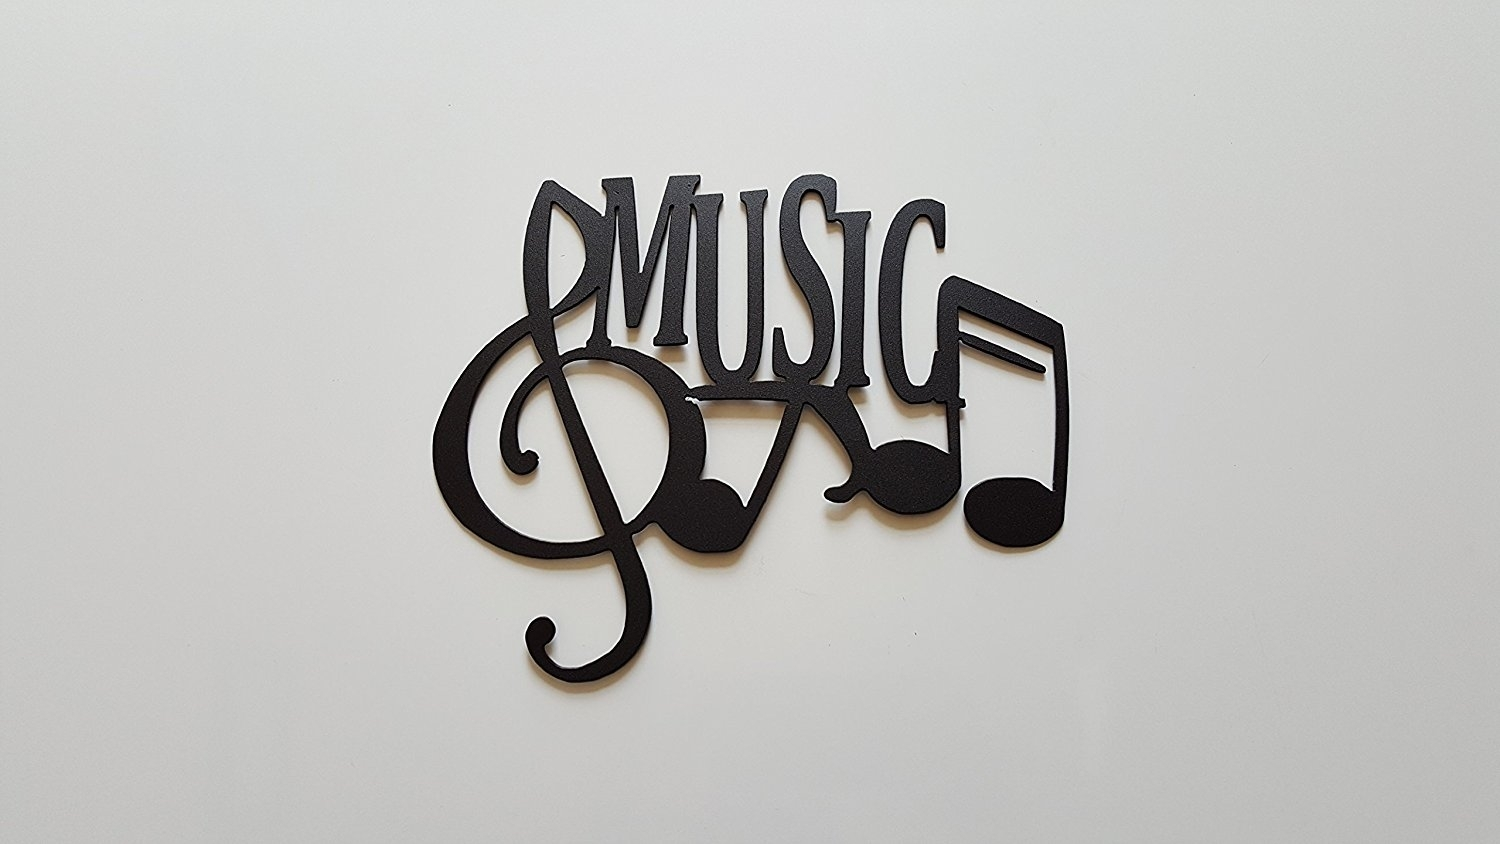 Buy Music Word And Music Notes Metal Wall Art Decor In Cheap Price Within Latest Music Wall Art (View 14 of 15)